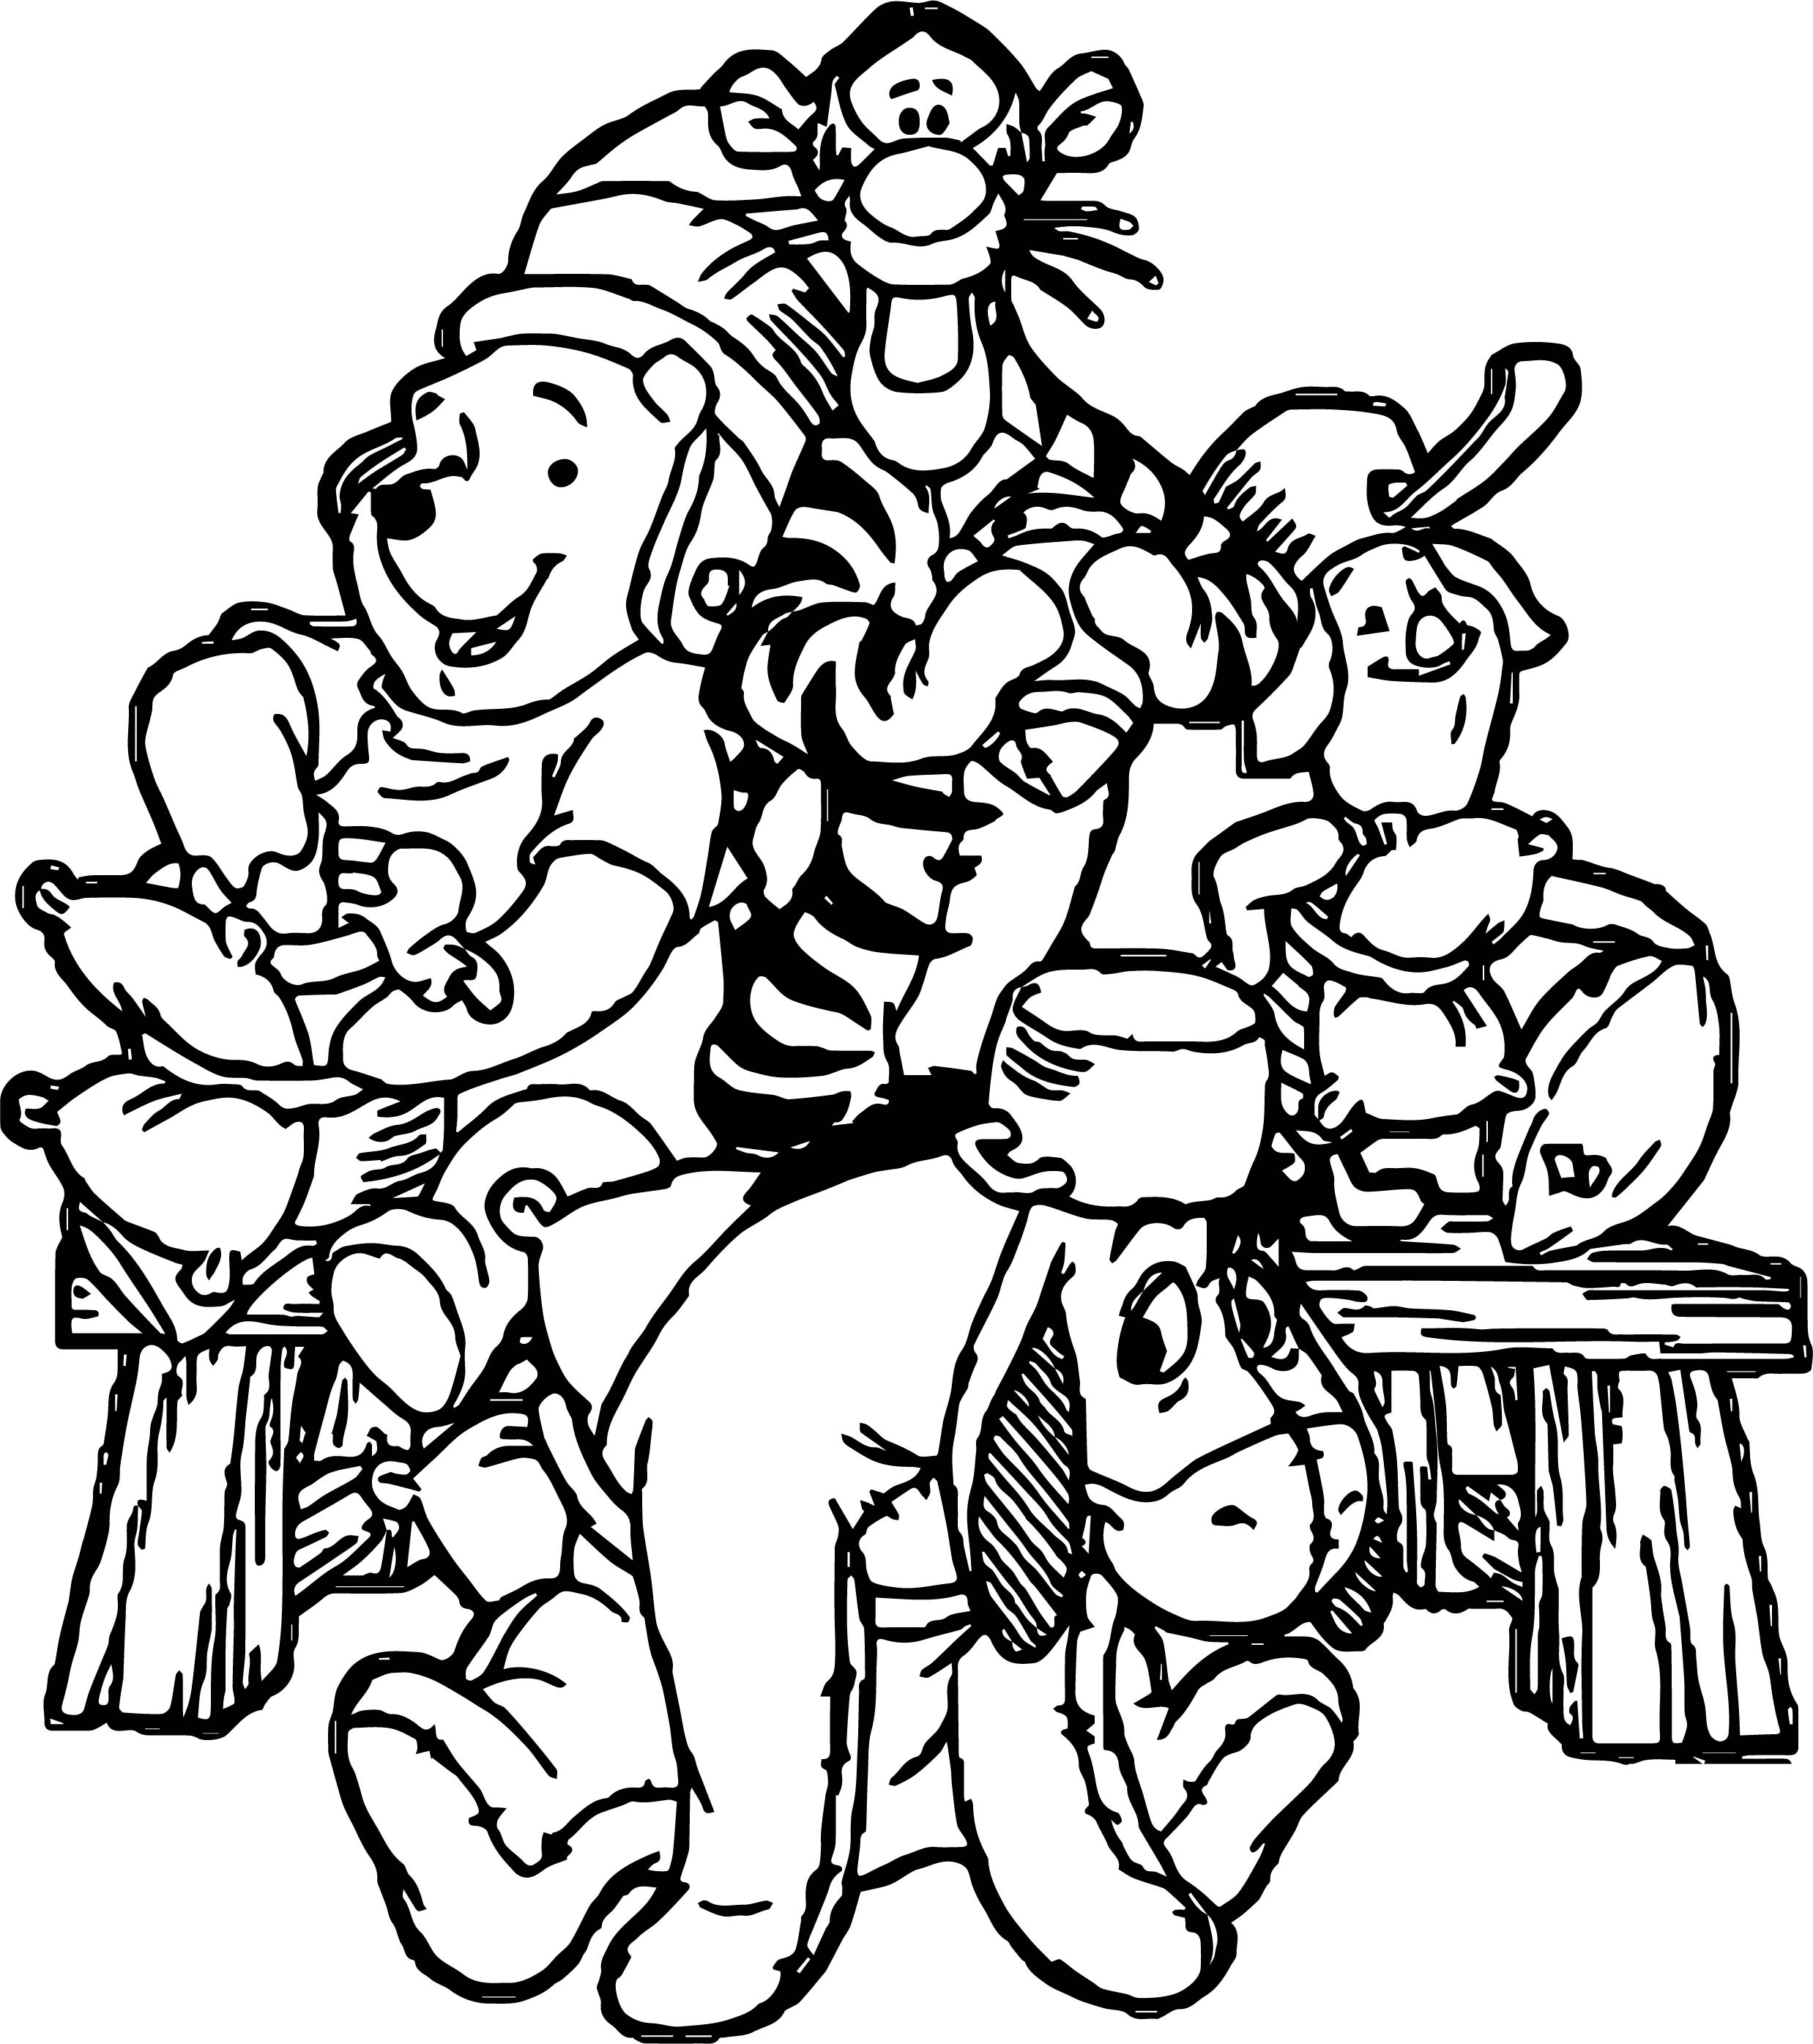 Friendship Cartoon Coloring Page